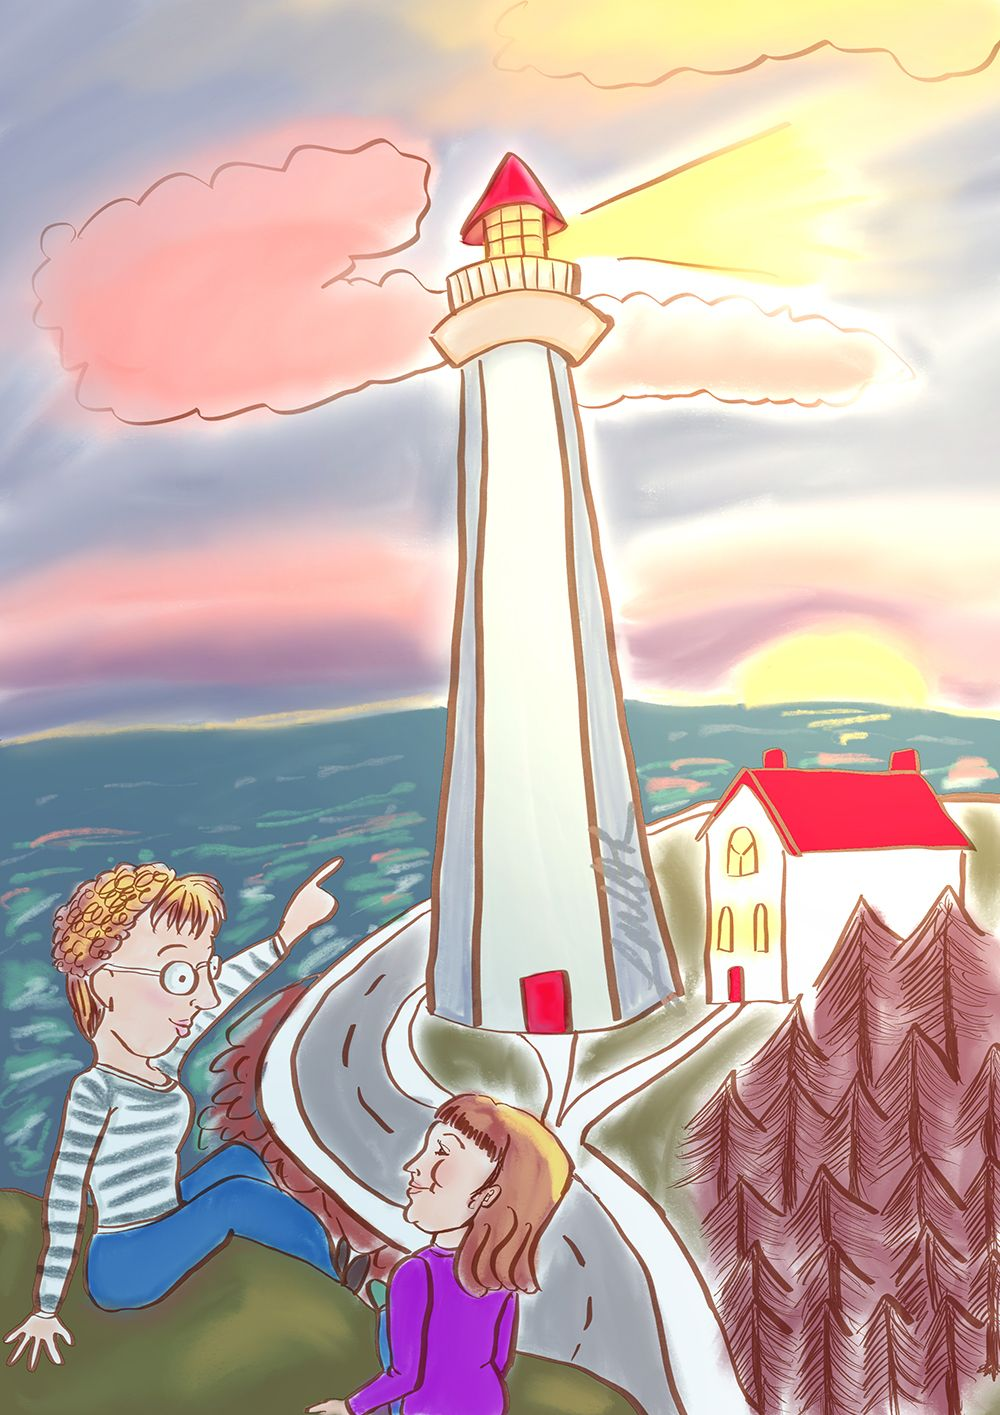 LighthouseLQ-sm.jpg